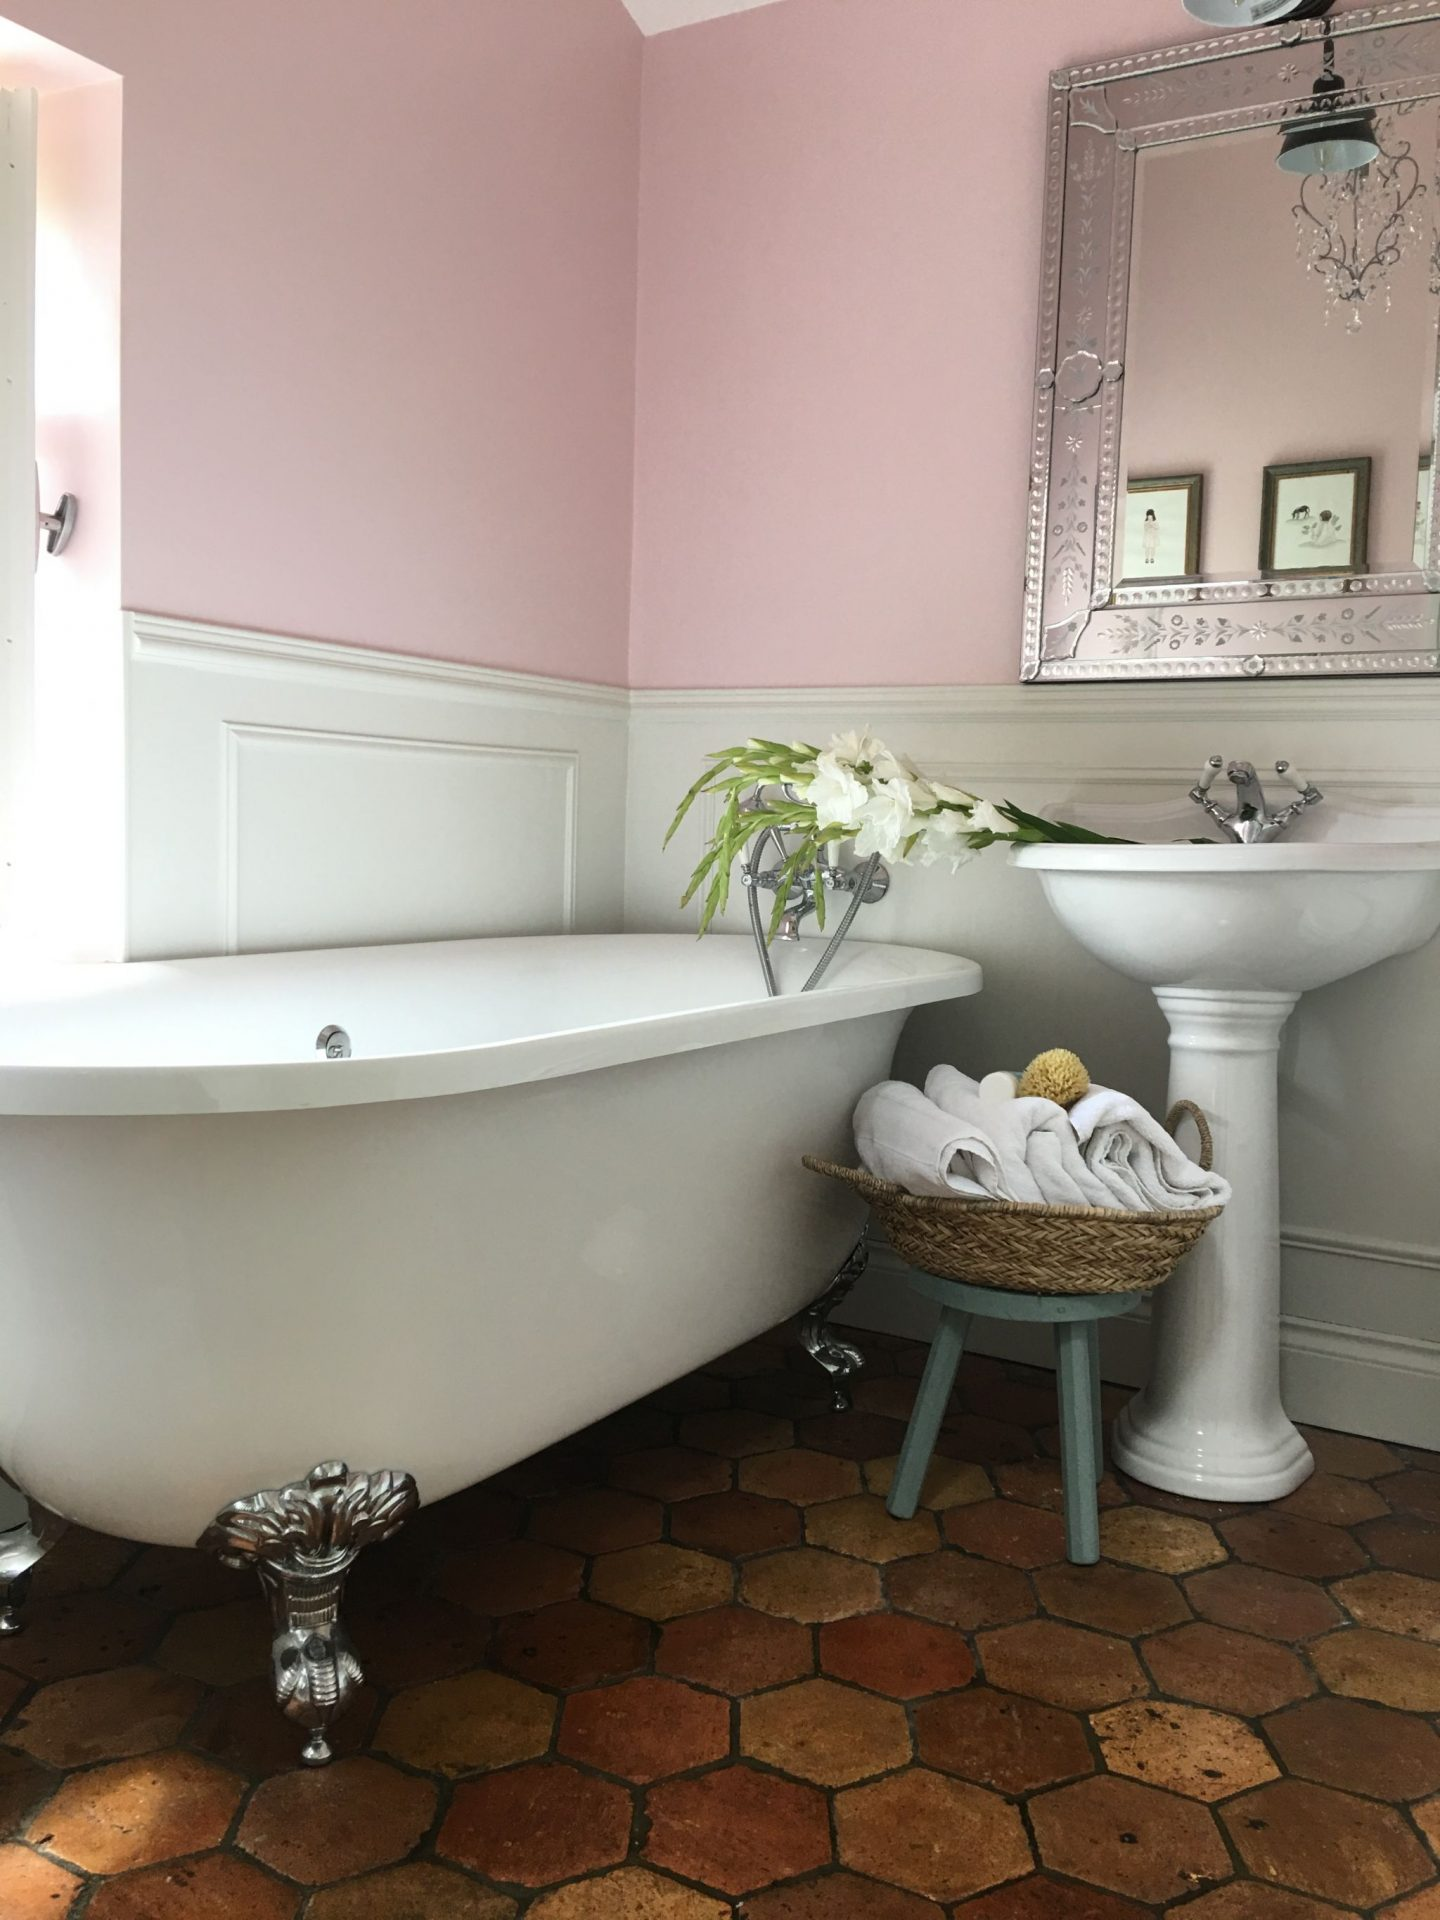 French farmhouse Farrow & Ball Middleton Pink bathroom with clawfoot tub and reclaimed terracotta tile floors. Vivi et Margot.